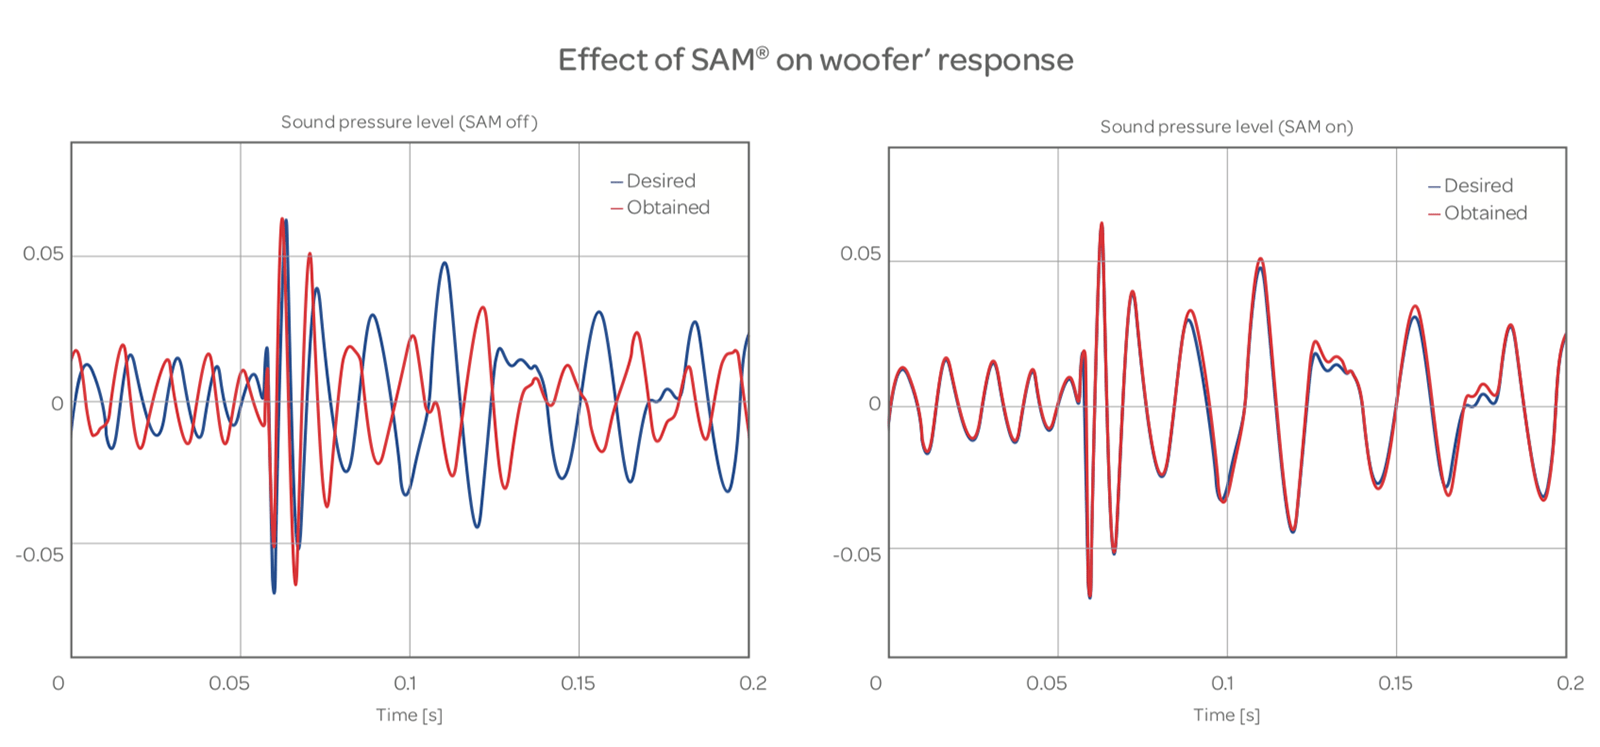 Effect of SAM on woofer' response